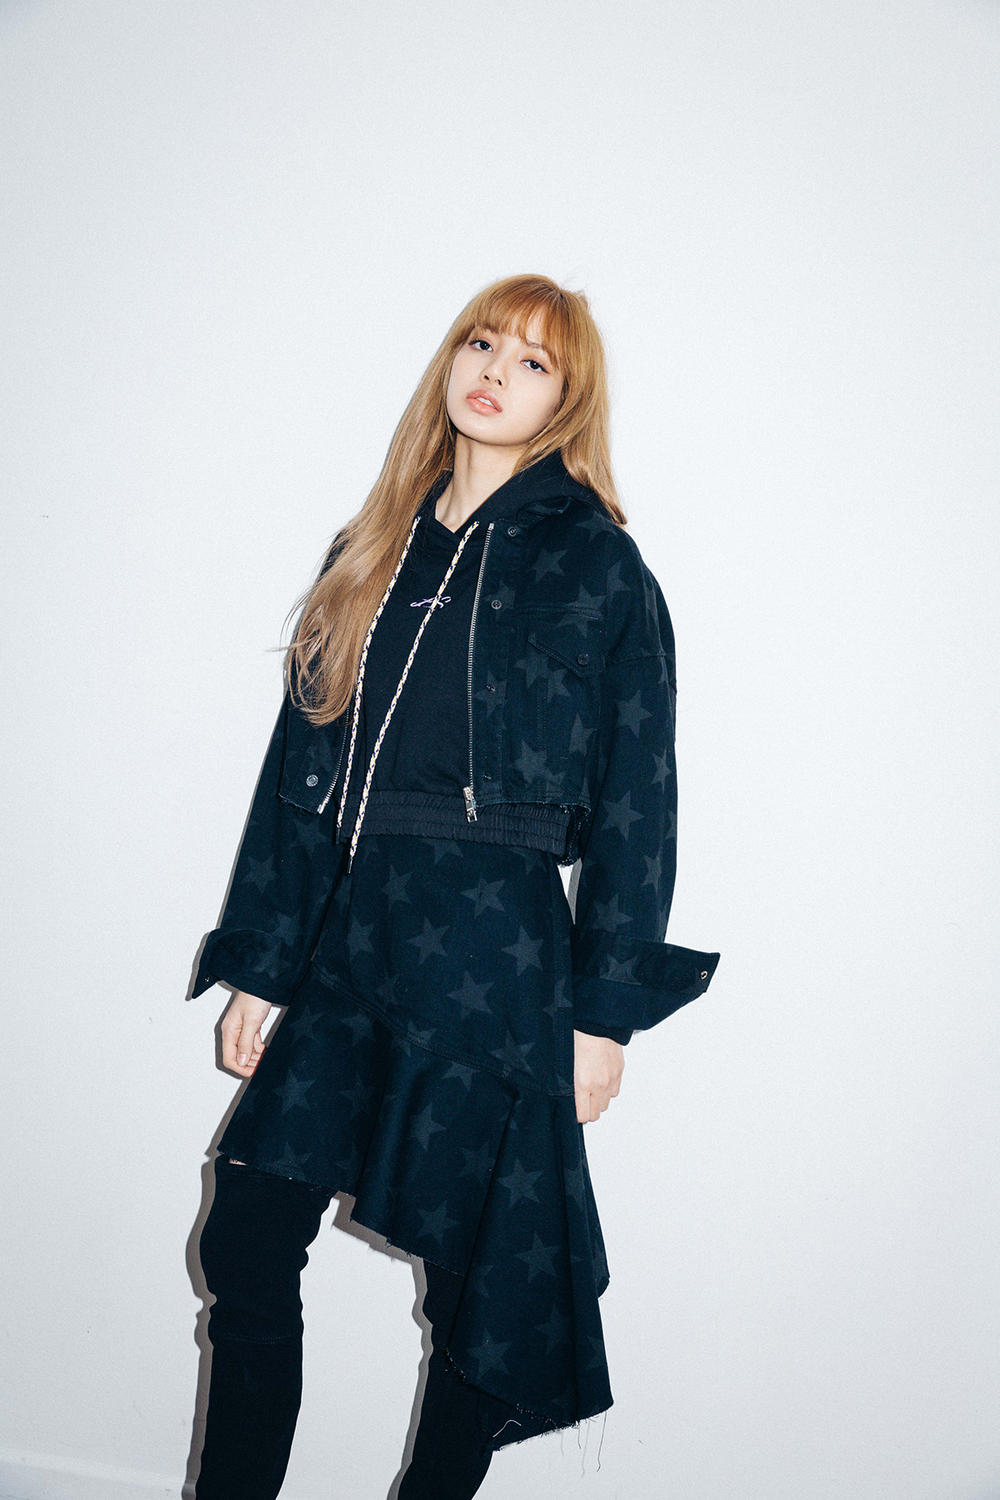 X-Girl Nonagon Blackpink Lisa Campaign Collaboration K-Pop Denim Jacket Skirt